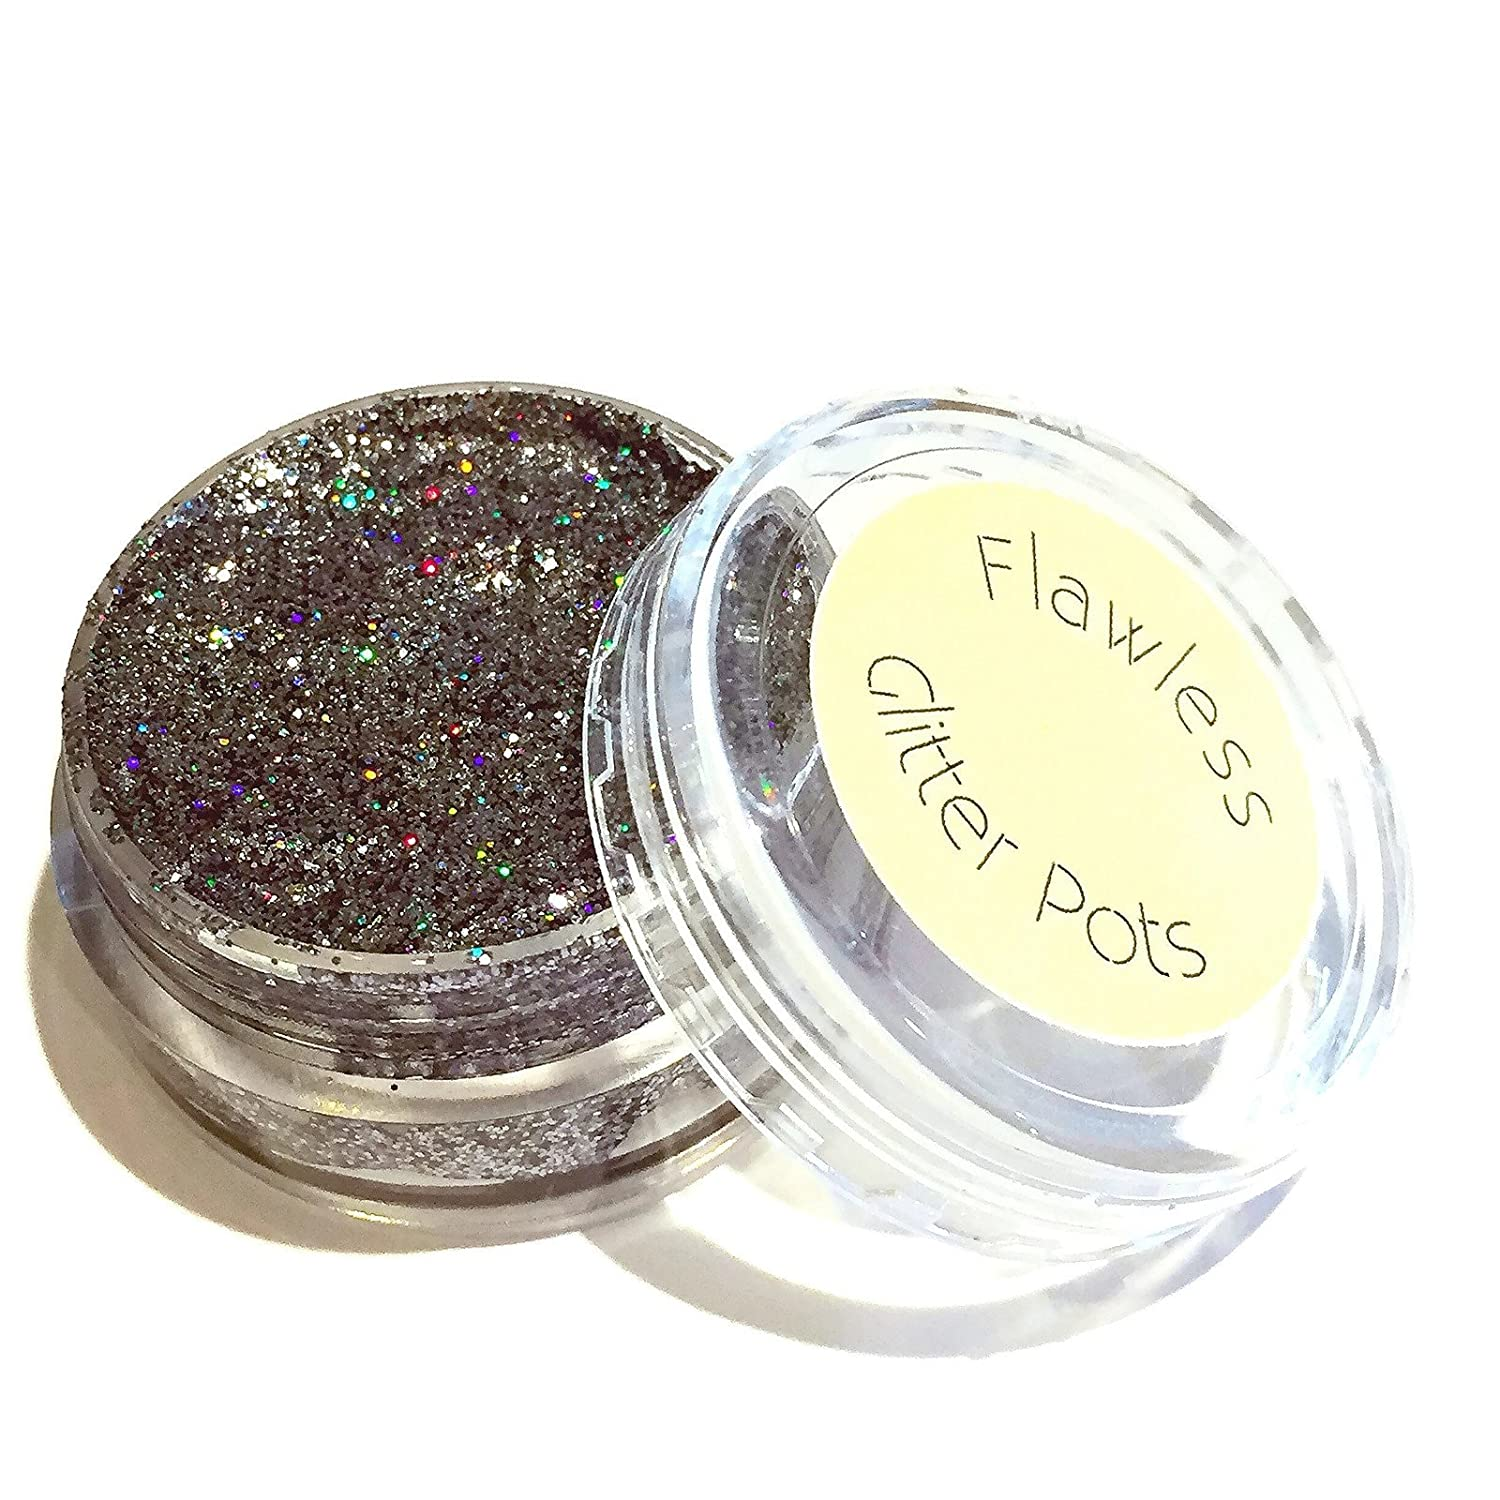 Flawless Glitter Pot - Outer Space, holo grey silver pressed eyeshadow. No adhesive required, vegan, eco-friendly, cruelty free